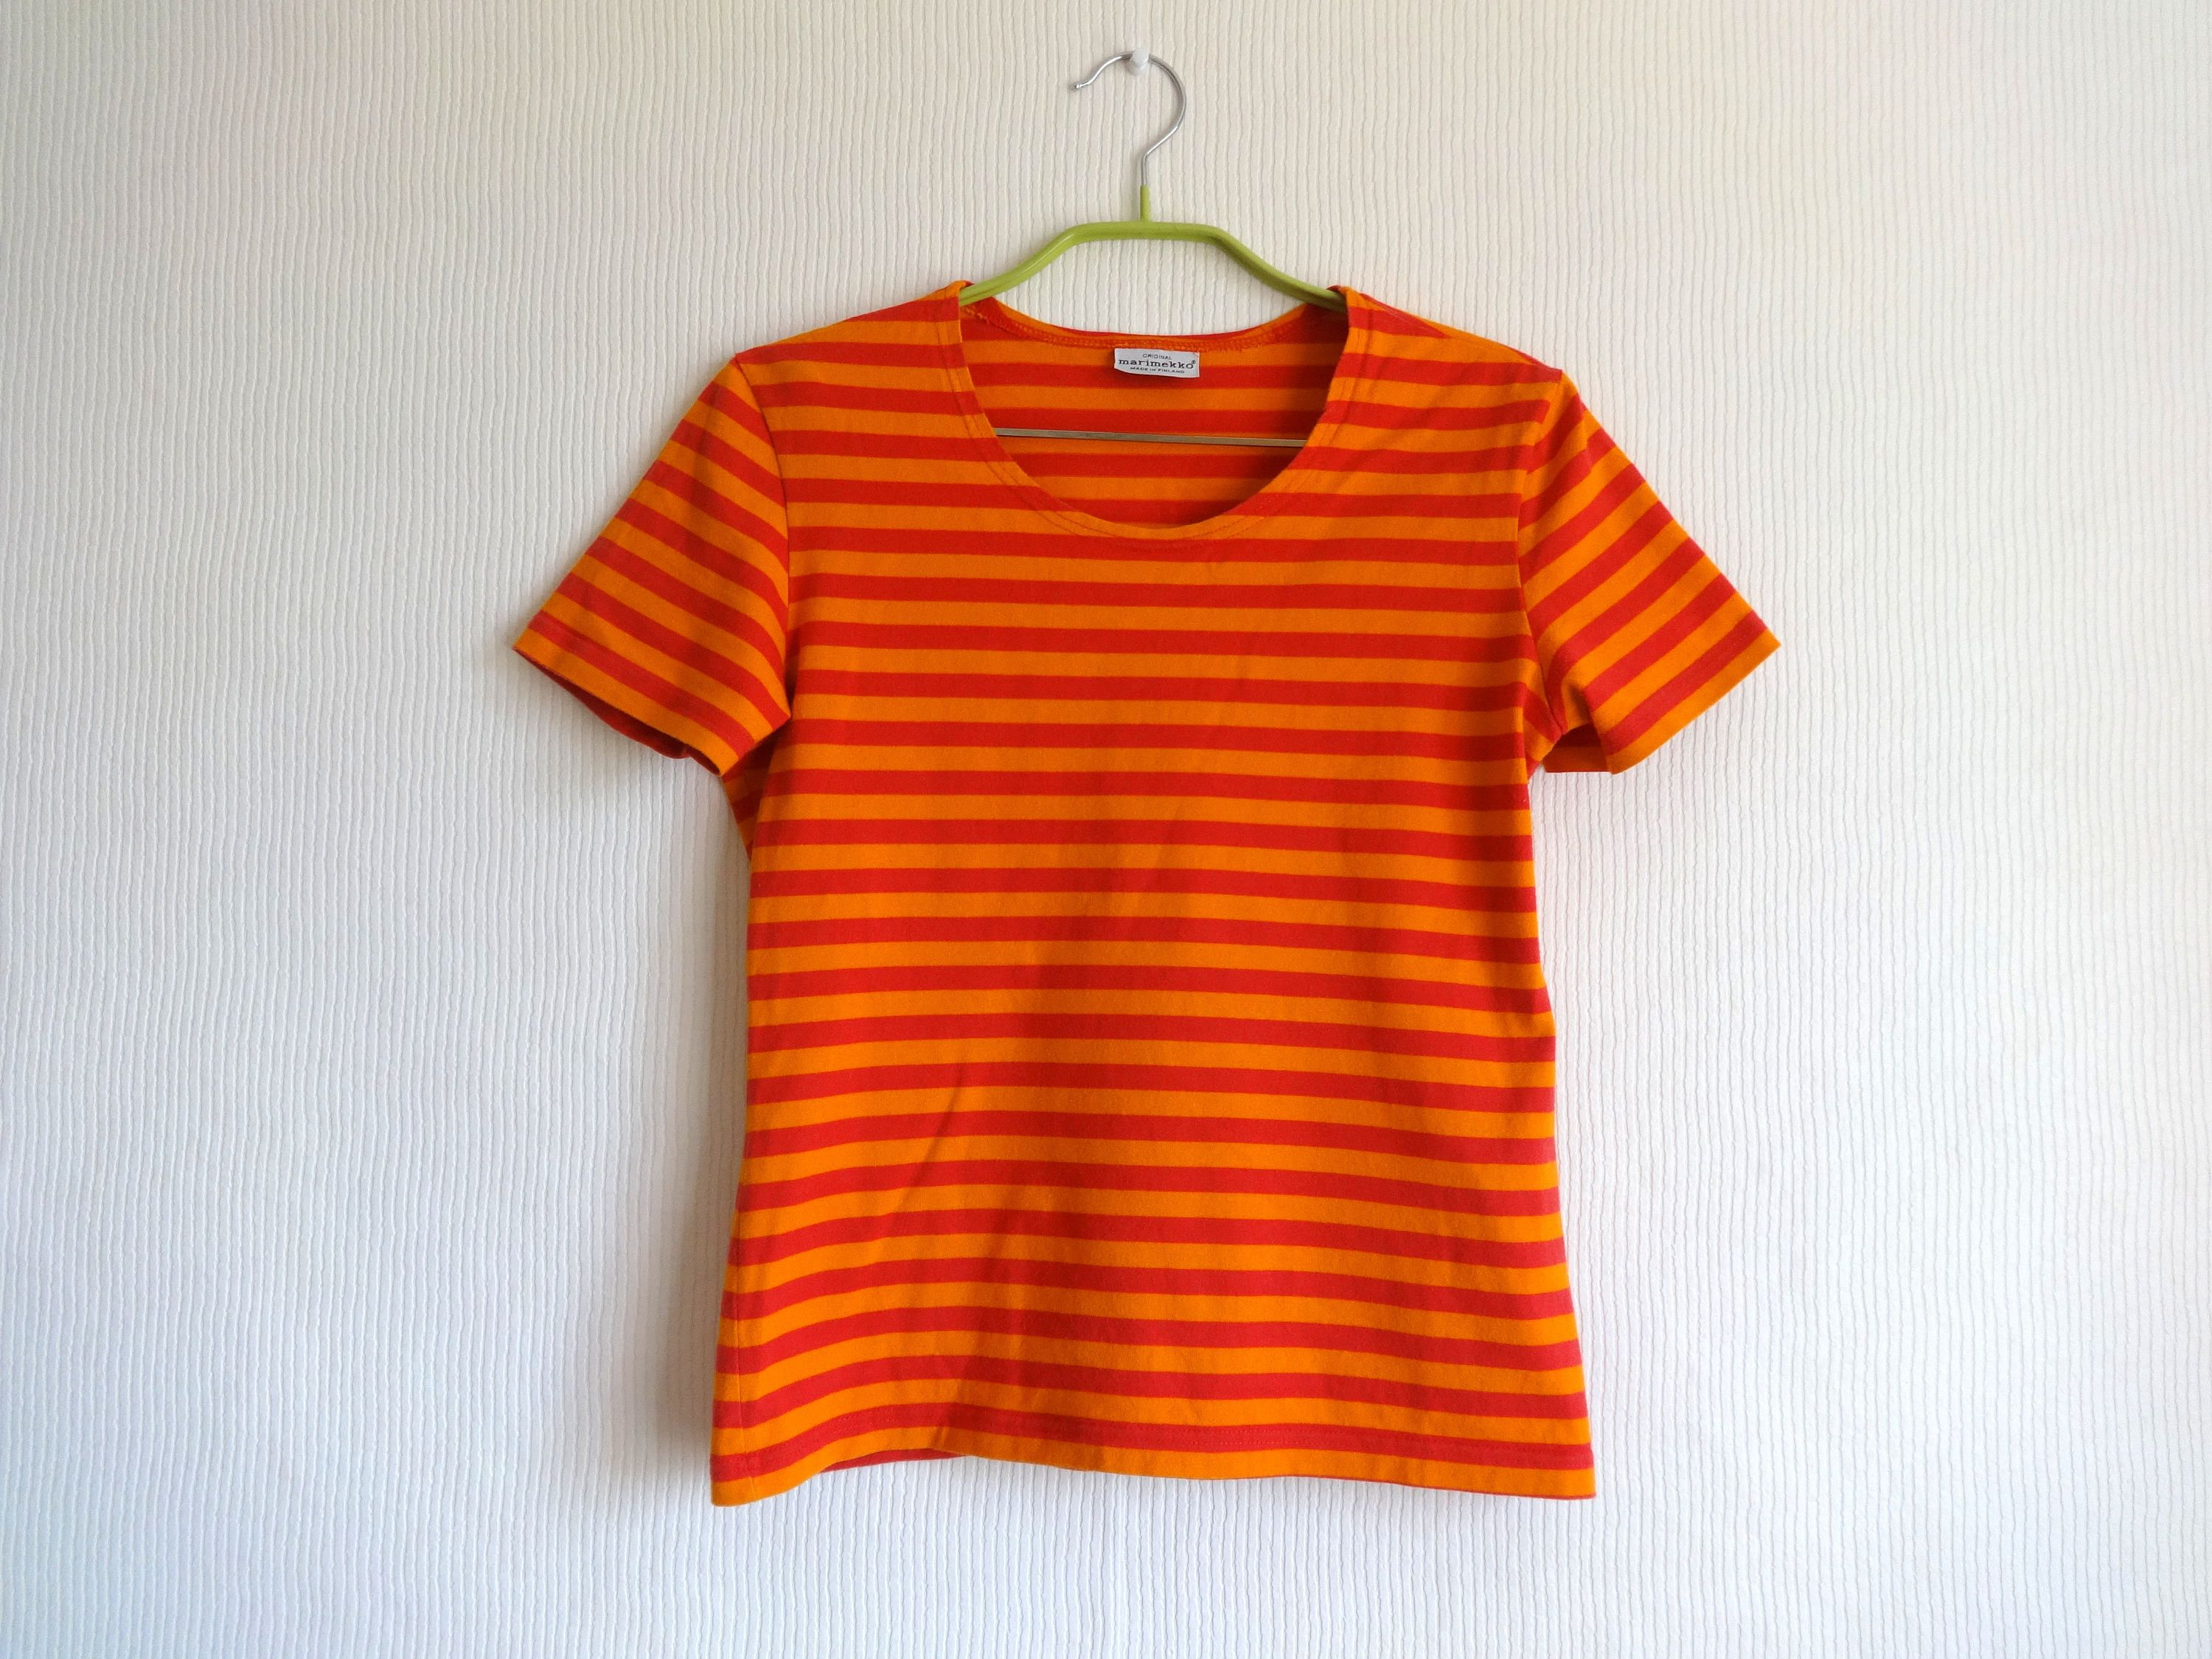 53829f5b MARIMEKKO Orange & Pink Striped T- Shirt Horizontal Stripes Cotton Jersey  Tee Women's Marimekko Clothing S Size Tee Nautical Made in Finland by ...